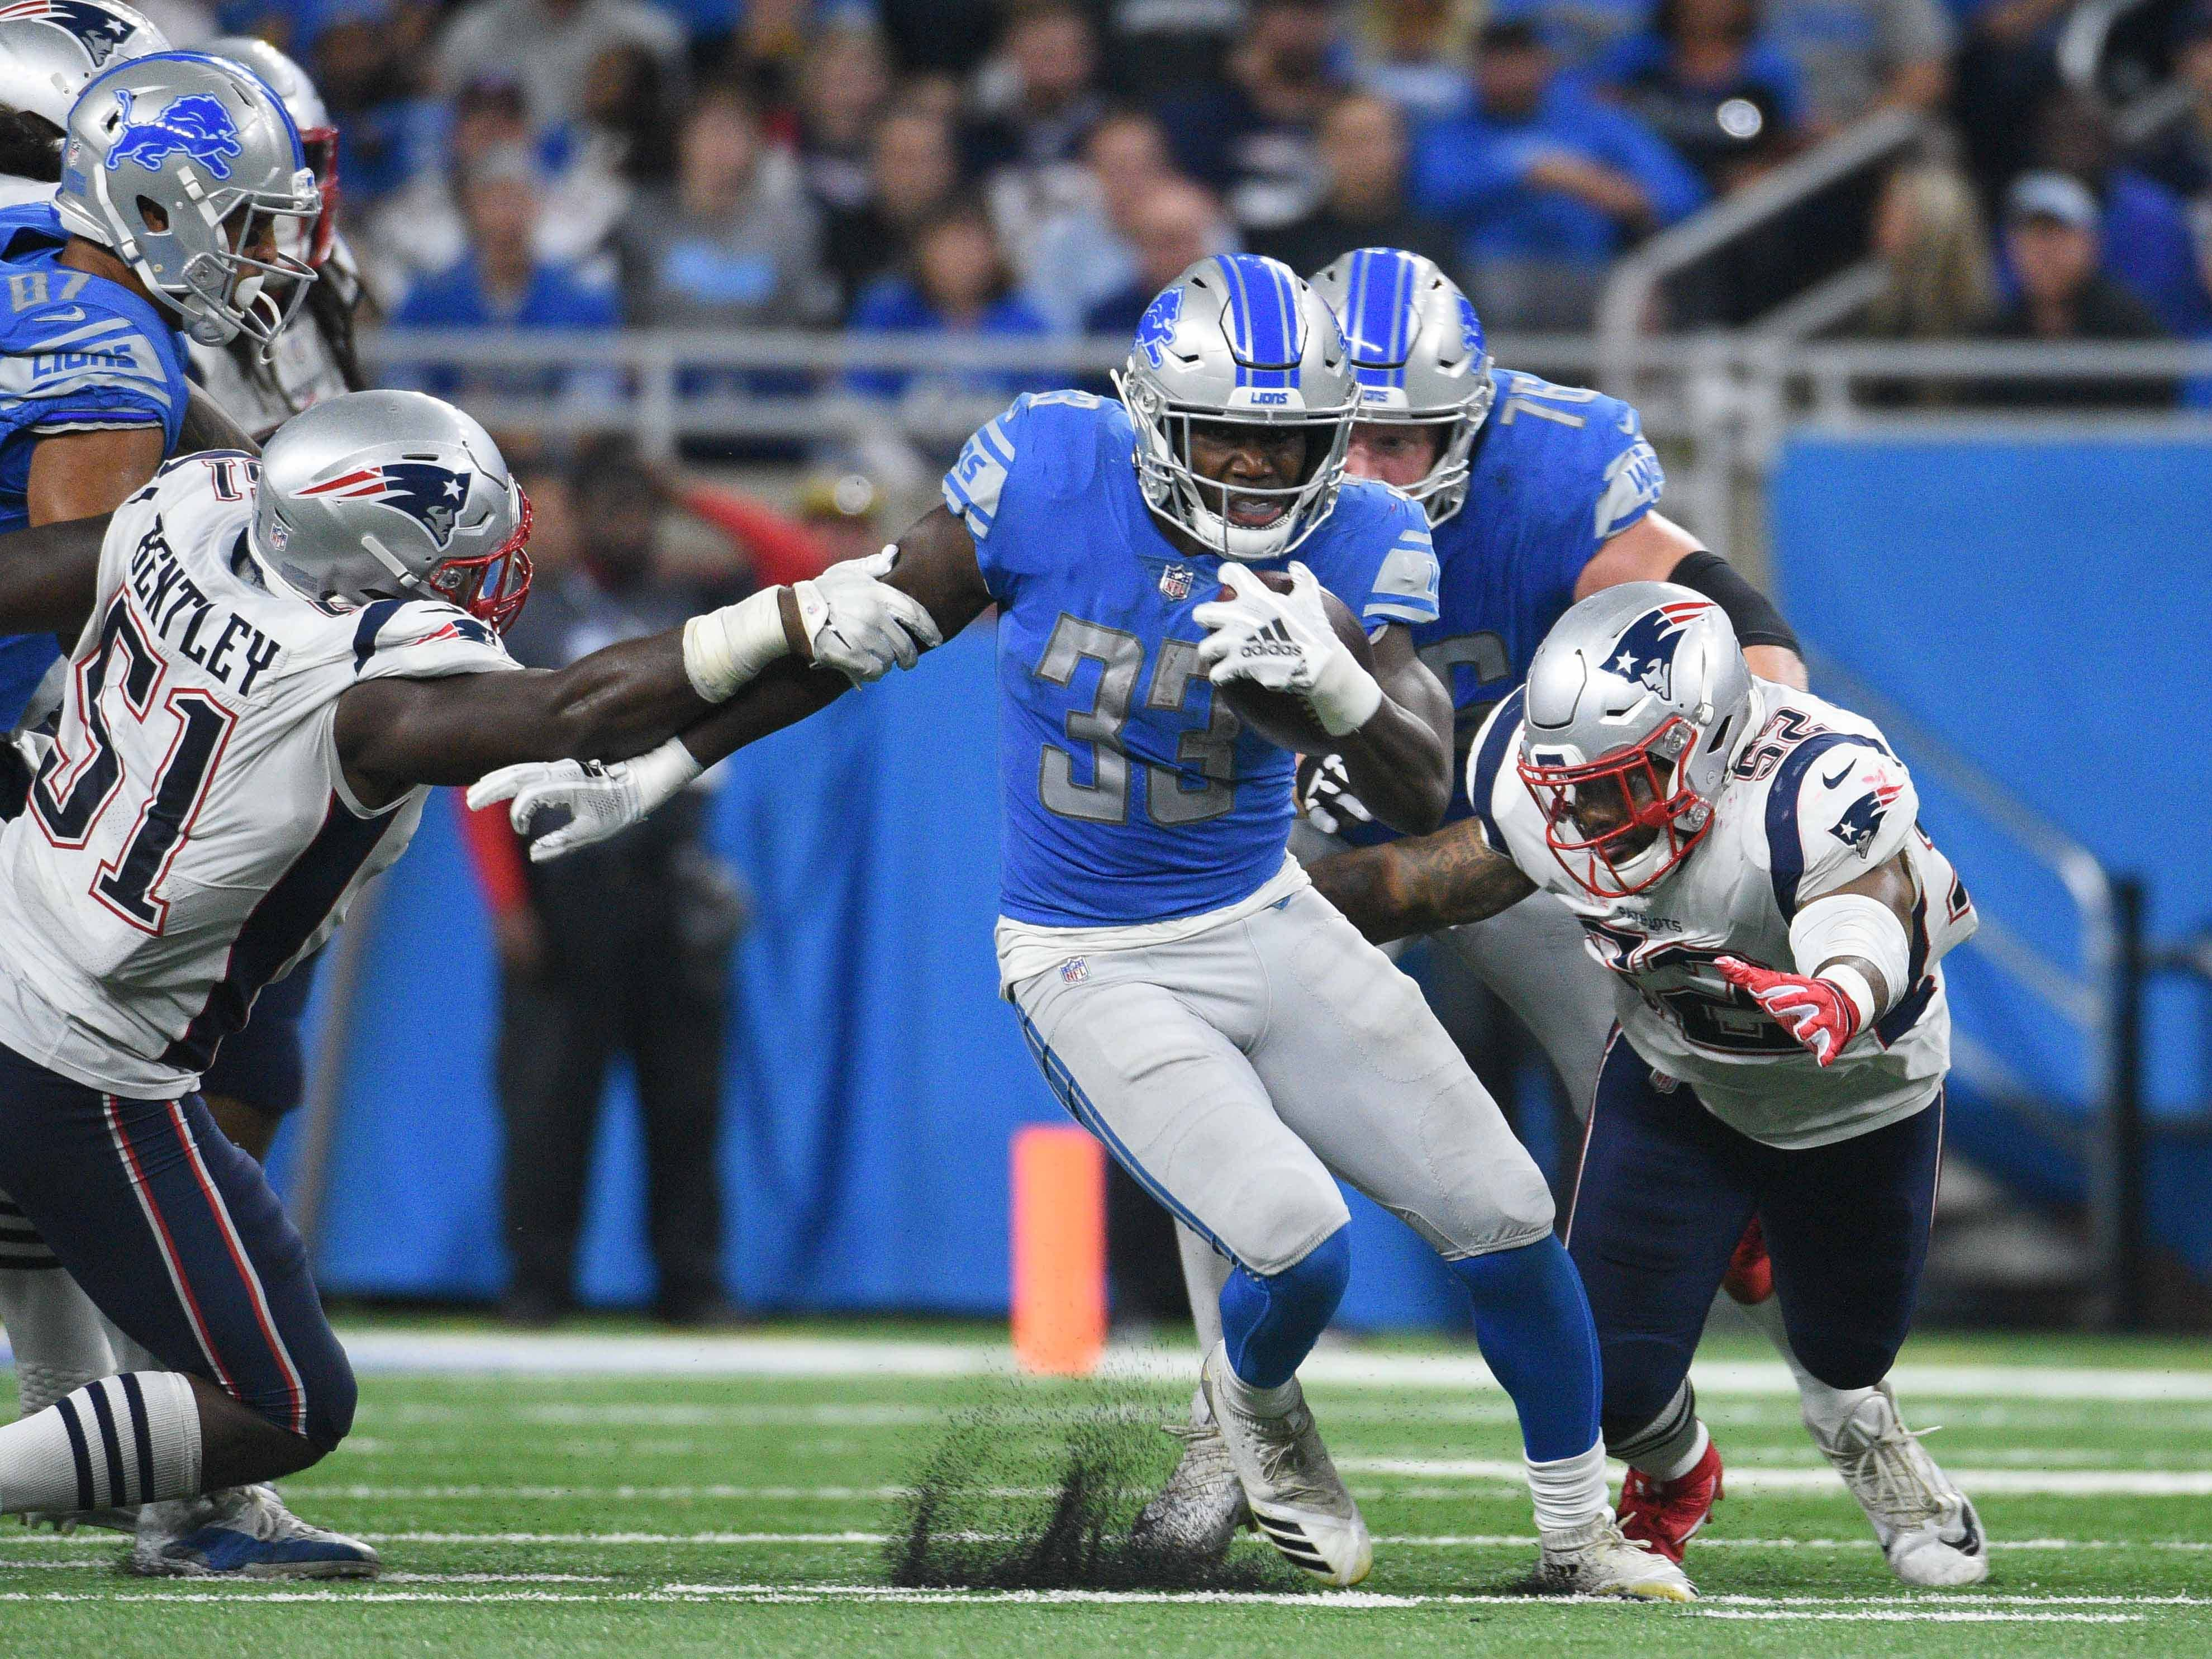 23. Lions (30): On pace to finish middling 16th league-wide in rushing ... yes, it would be their best rank since Barry Sanders' final year in 1998.